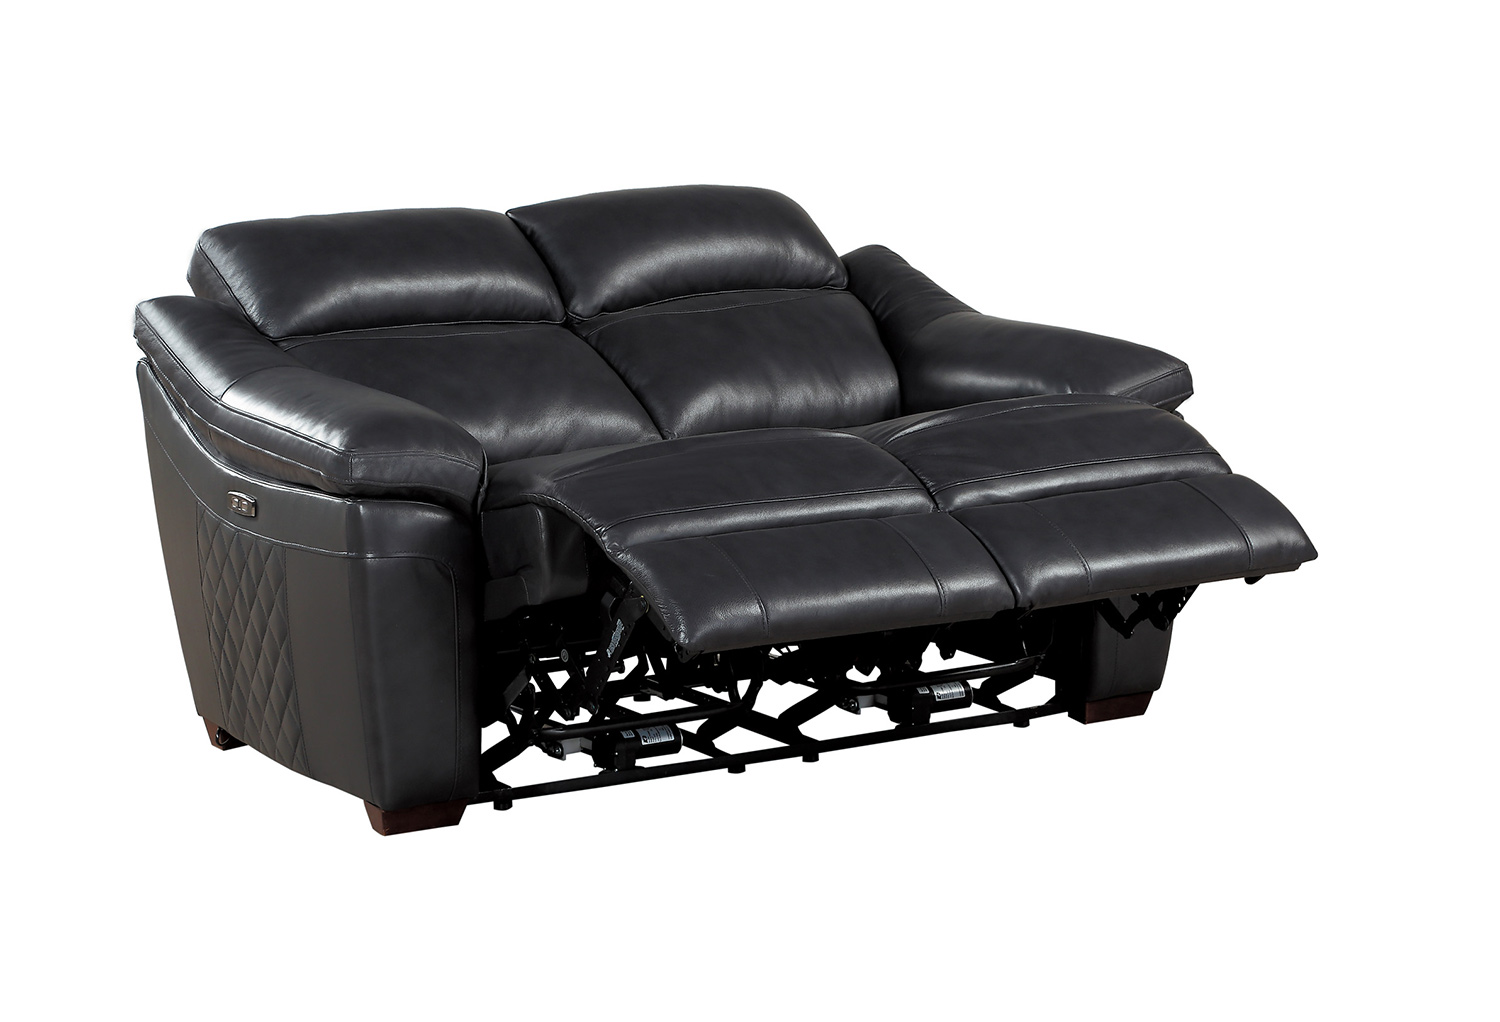 Homelegance Renzo Power Double Reclining Love Seat - Dark Gray